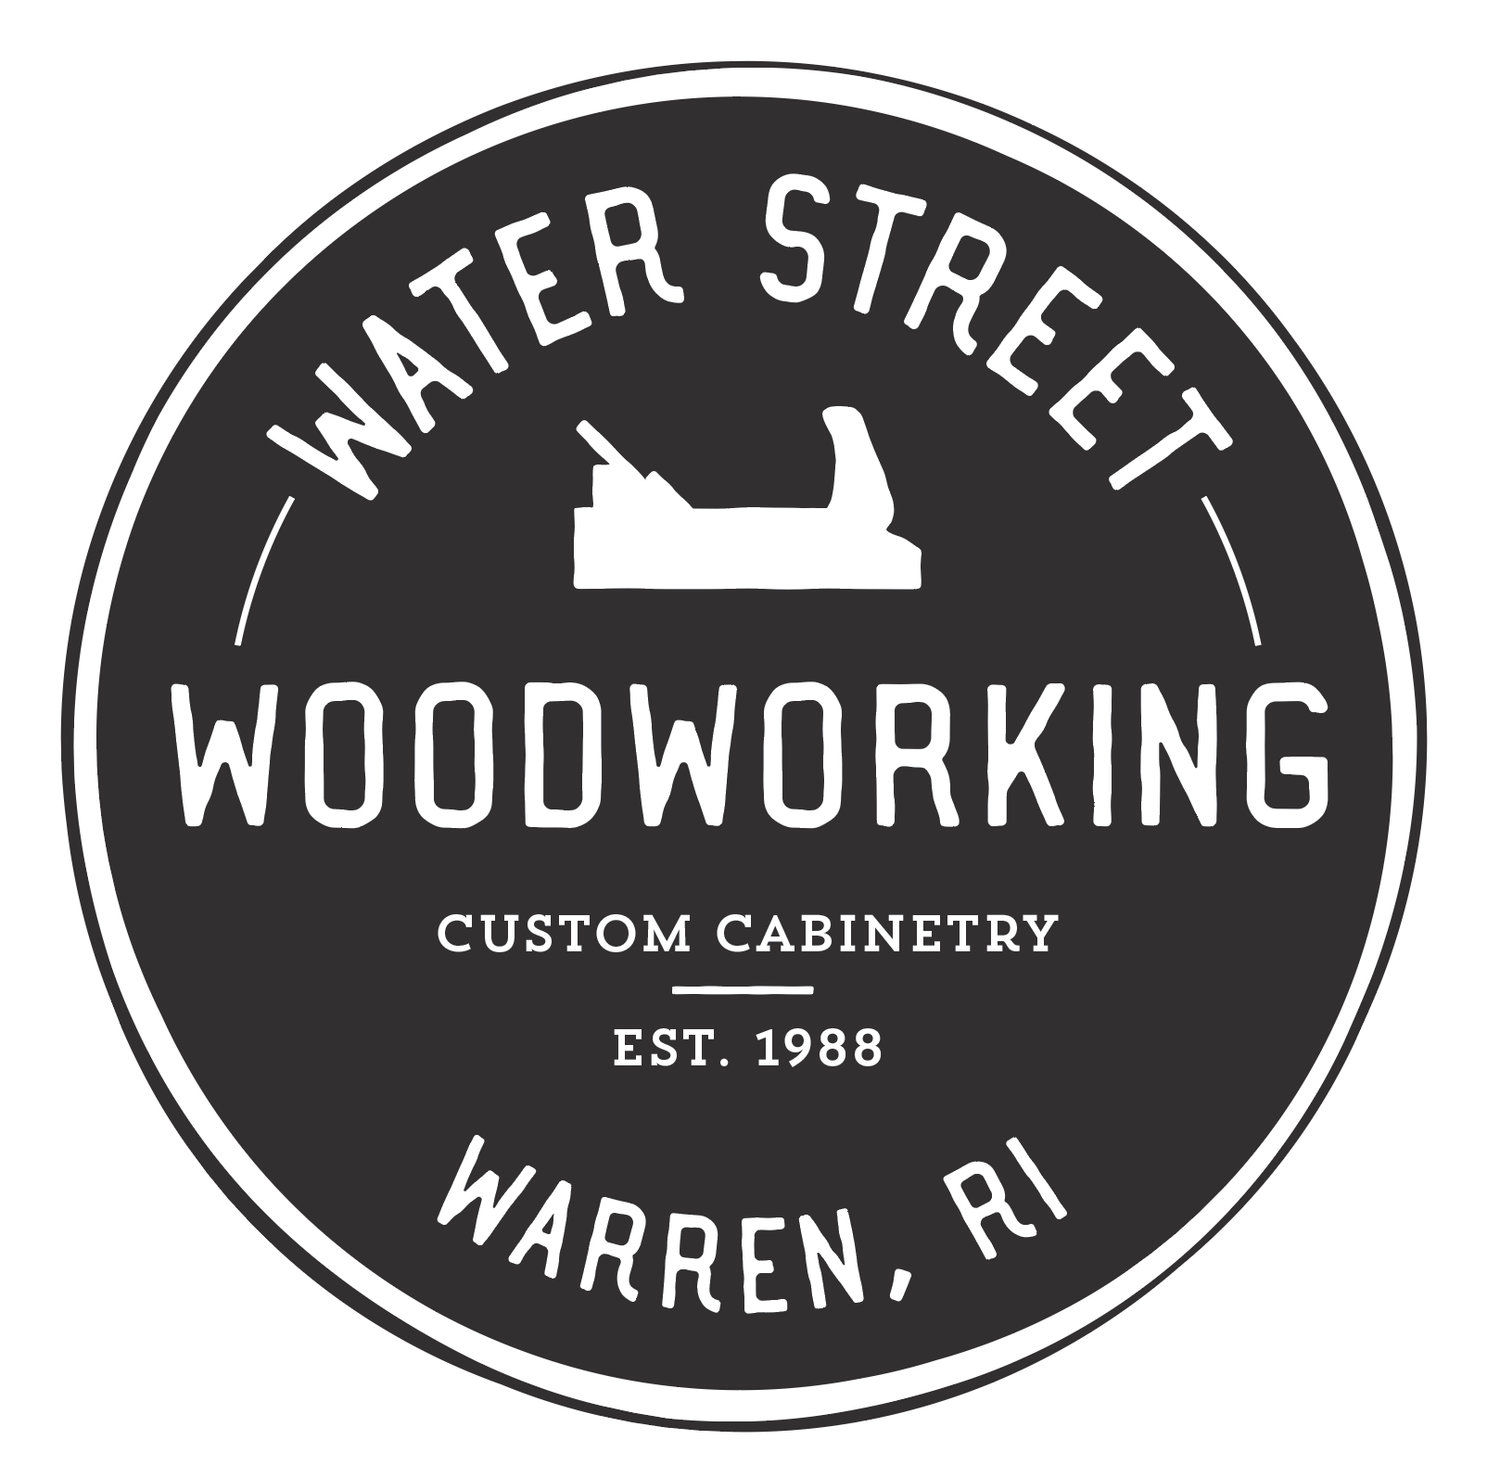 Water Street Wood Working